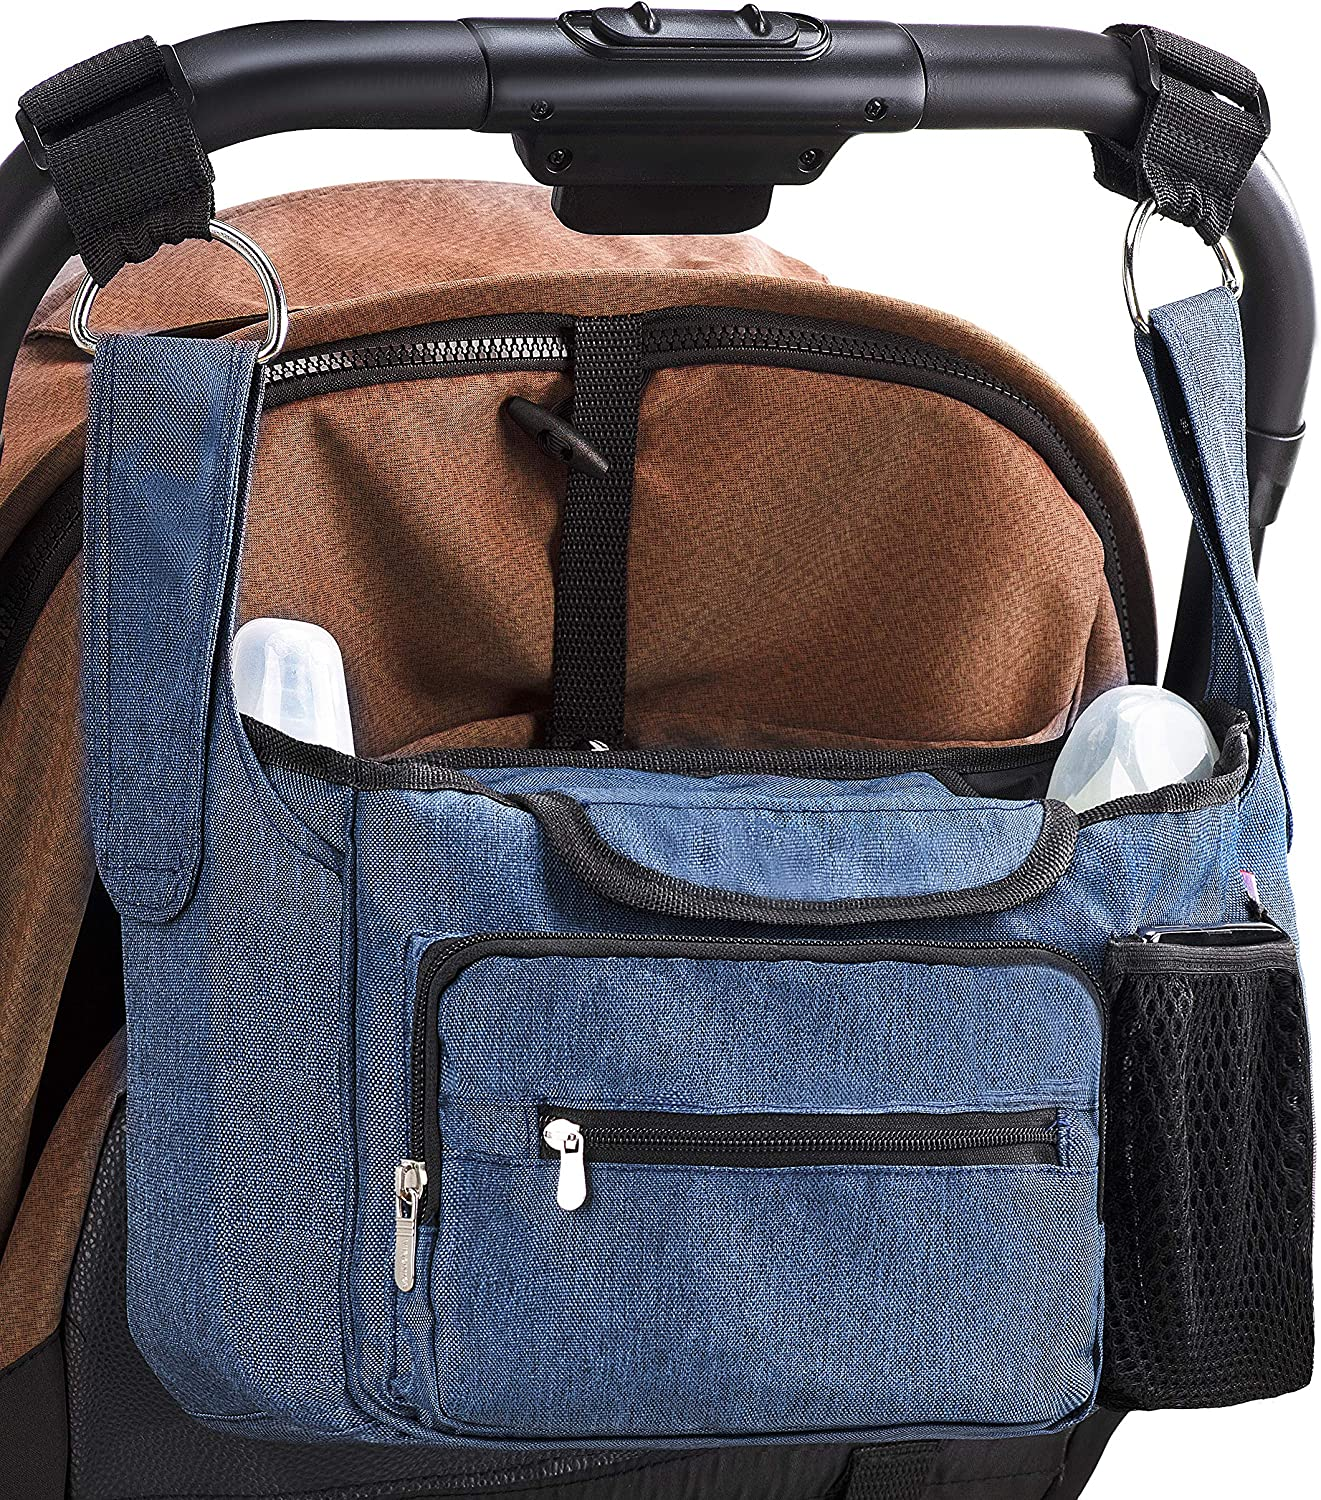 Convenient Stroller for All Types of Strollers BLUE Lenta mall Baby Stroller Organizer Universal Stroller Organizer for Smart Moms with Cup Holders